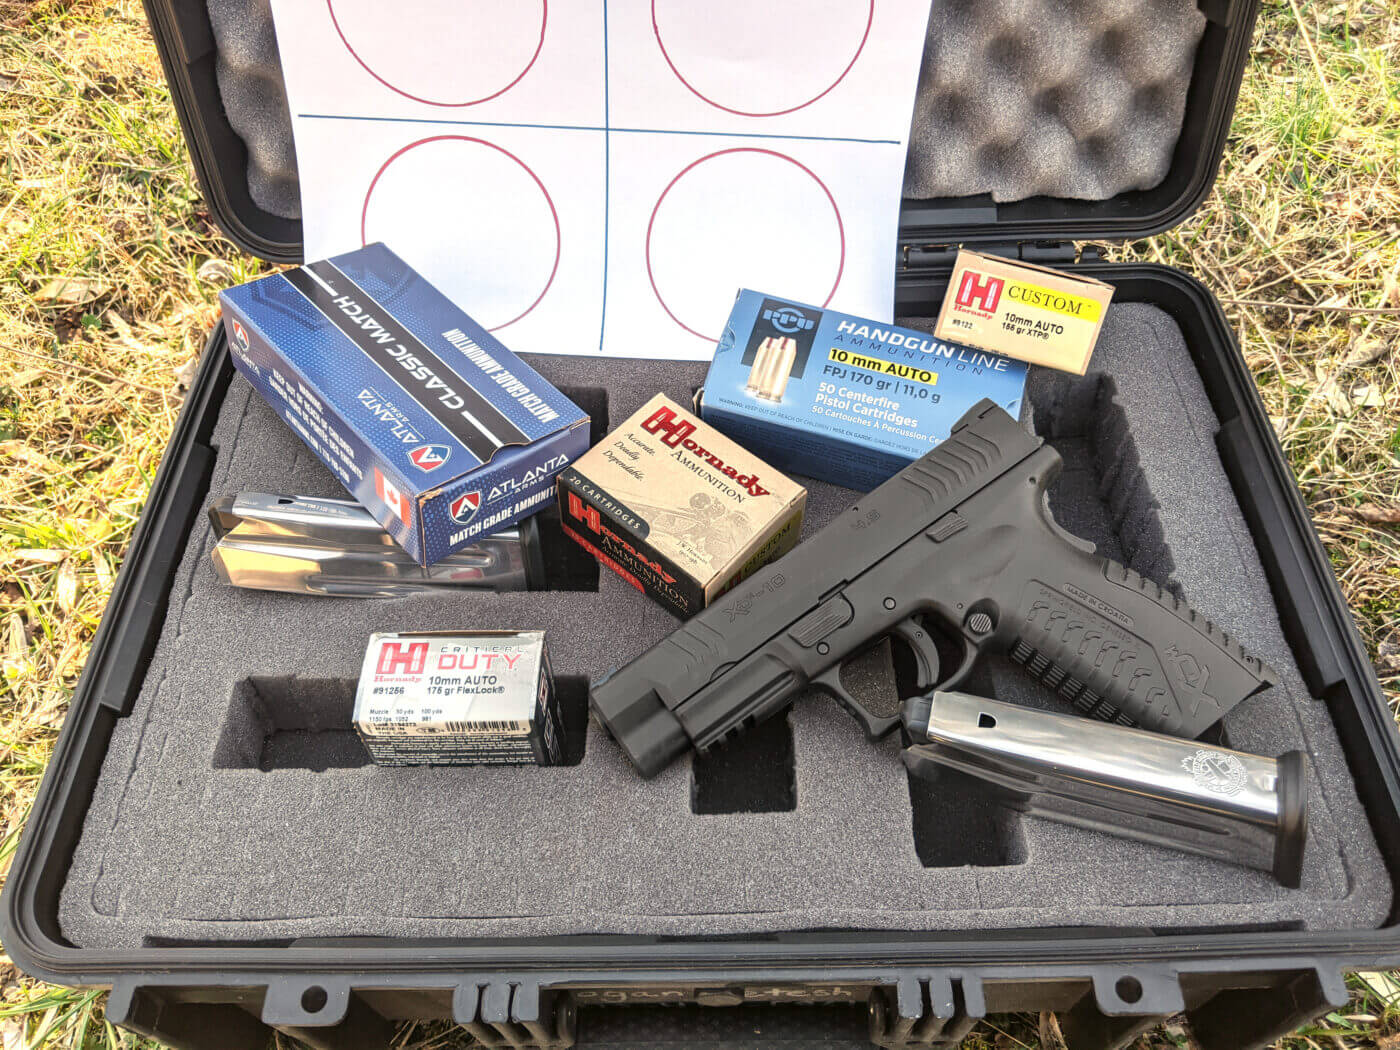 Setting up to test 10mm ammo with the Springfield XD-M pistol